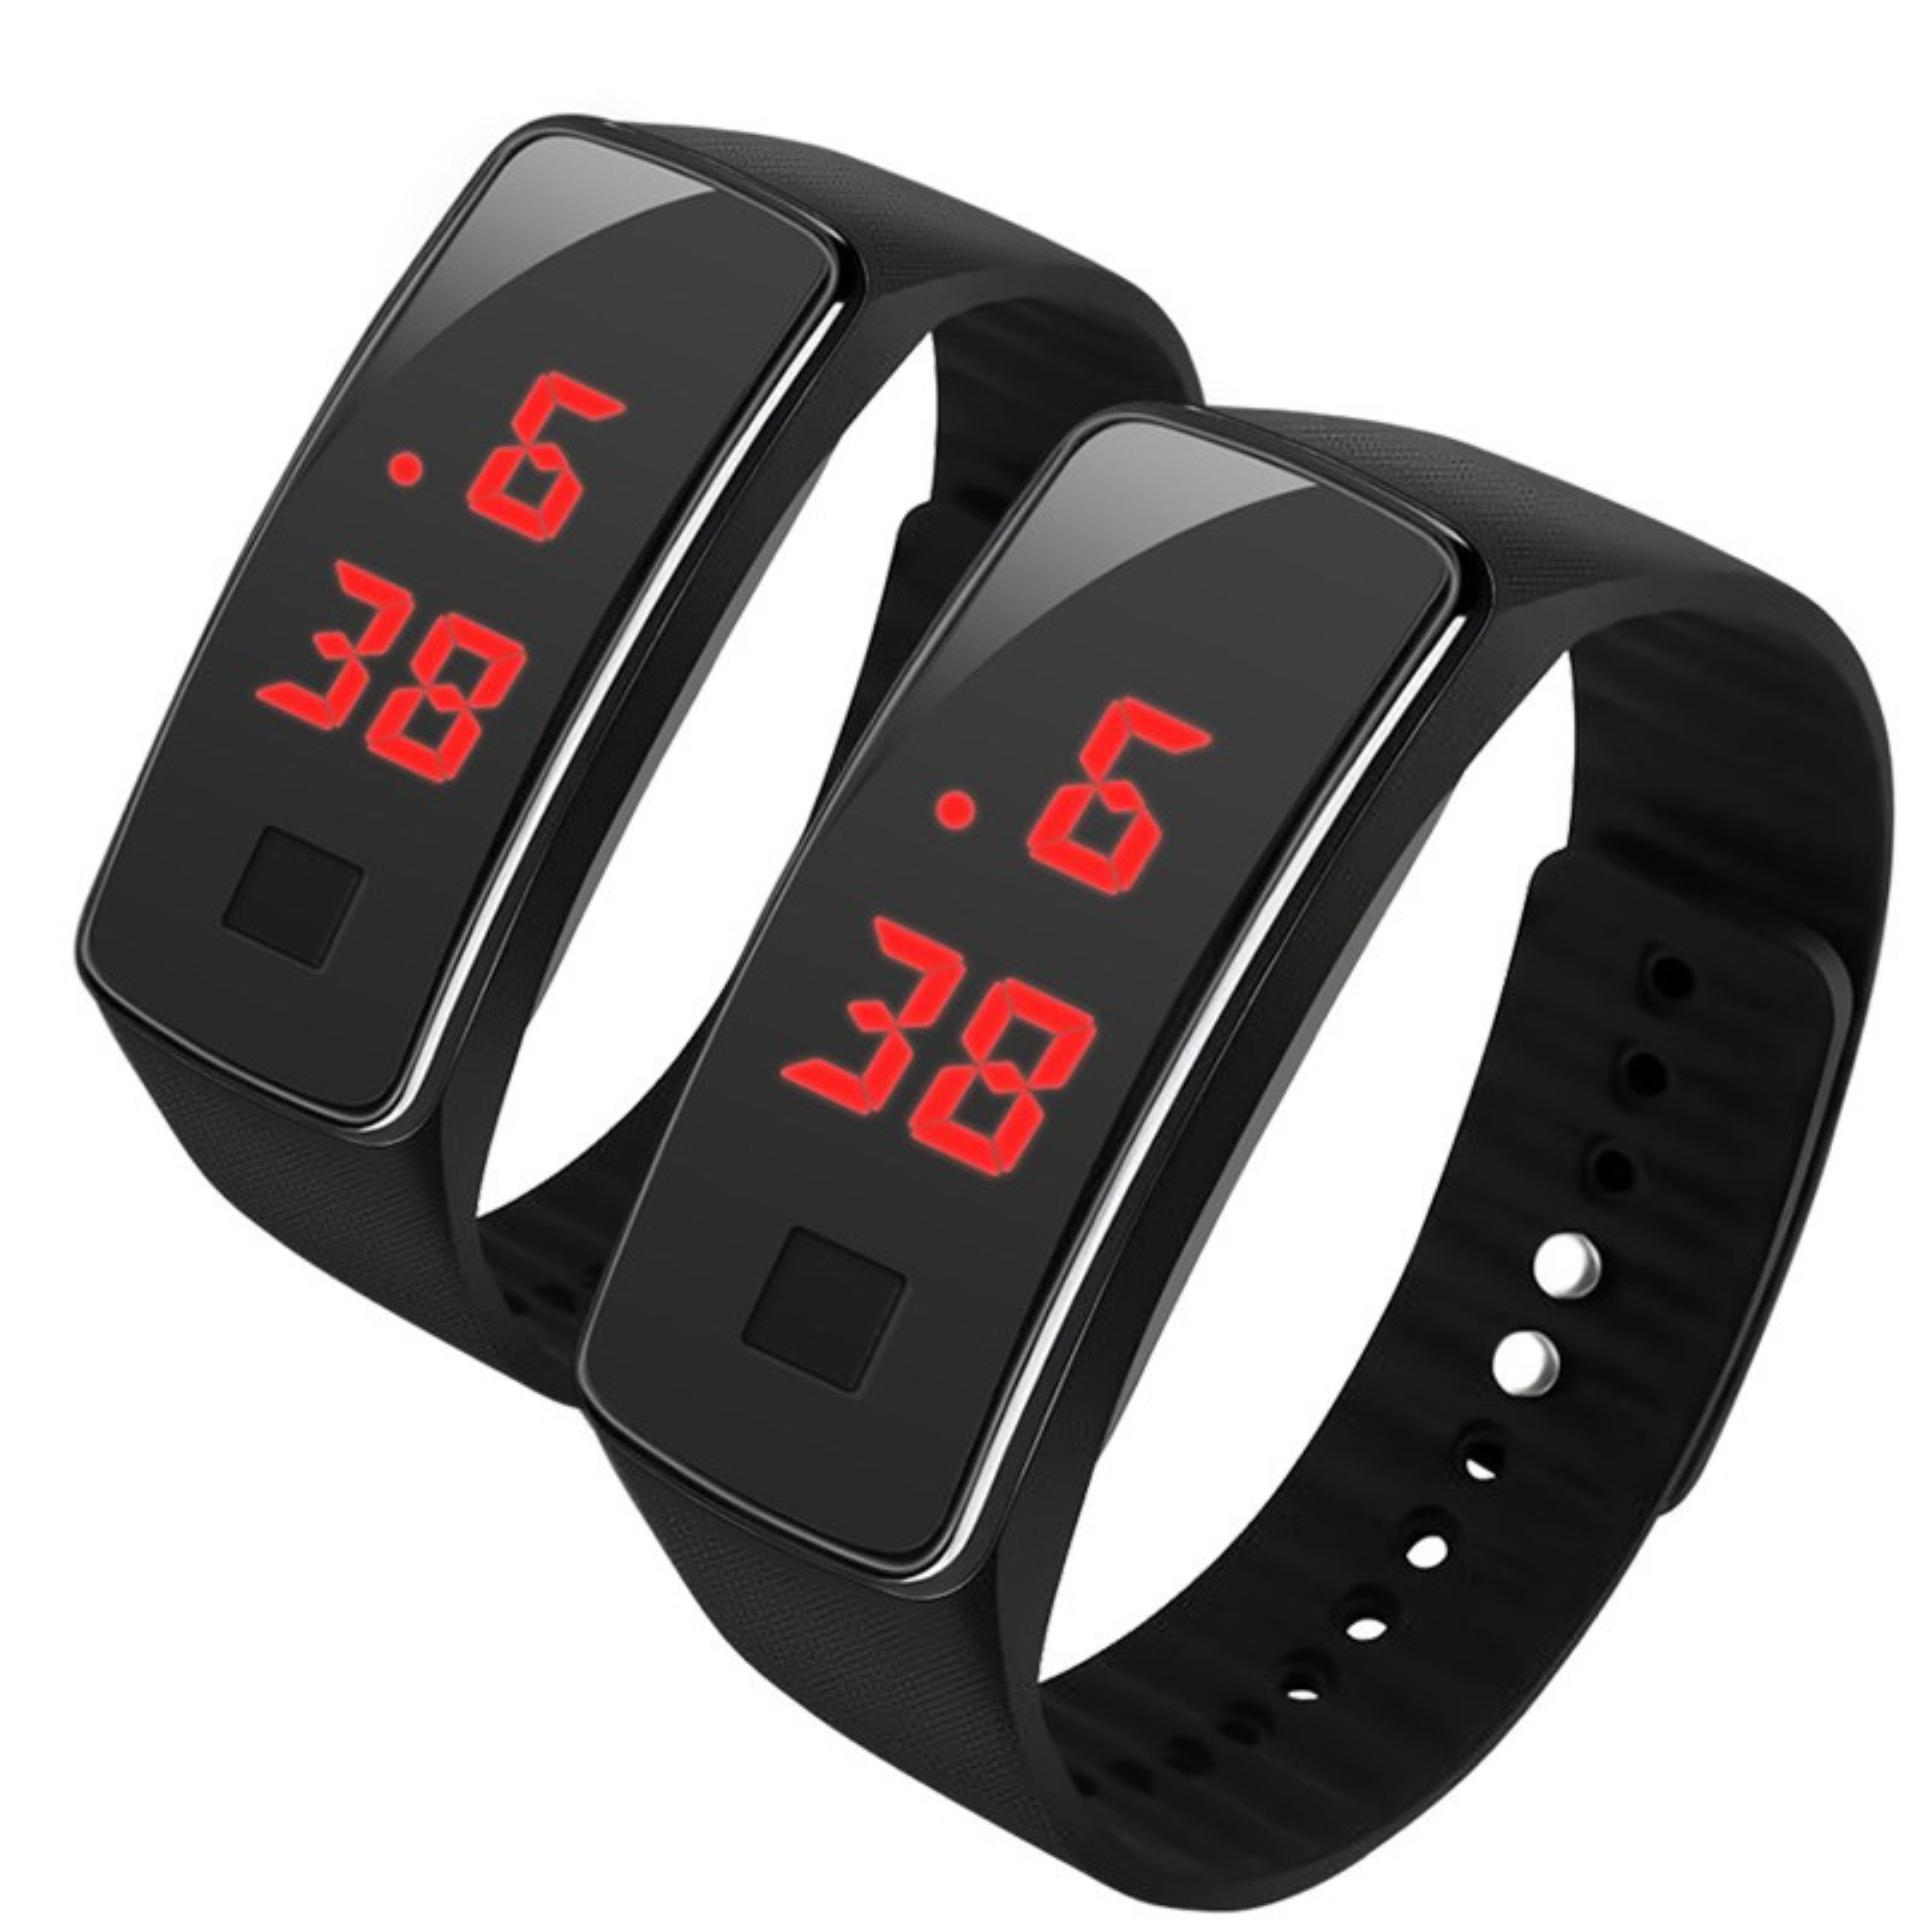 KINGDO L7 LED Watch for Kids set of 2